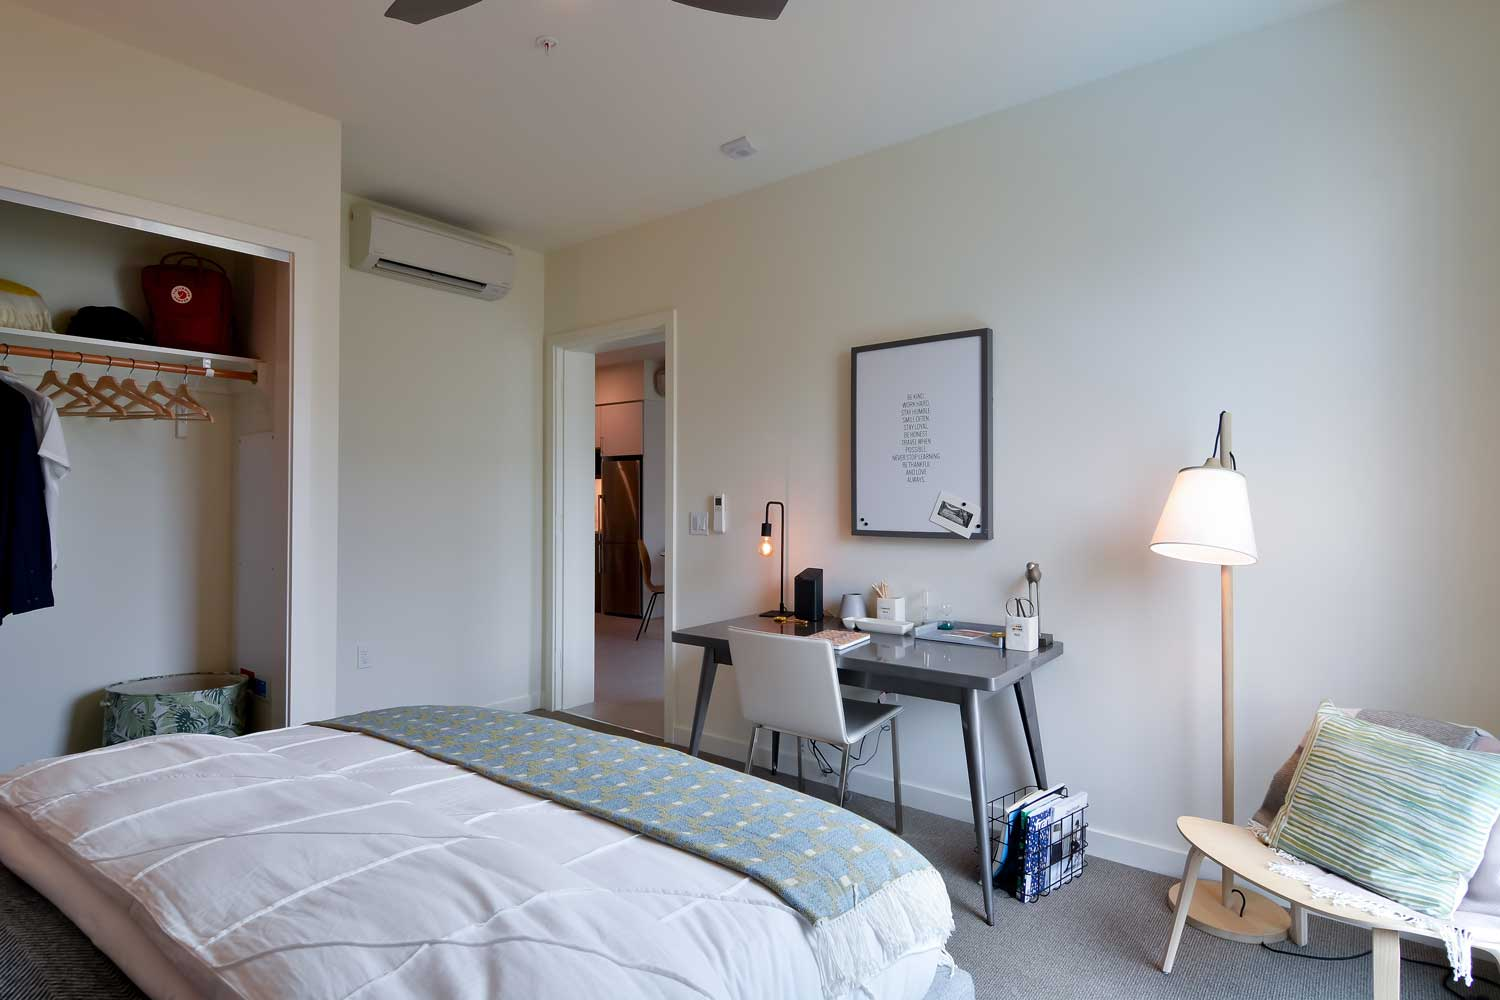 Luxury One Bedroom Apartments in Union City California - The Union Flats Bedroom